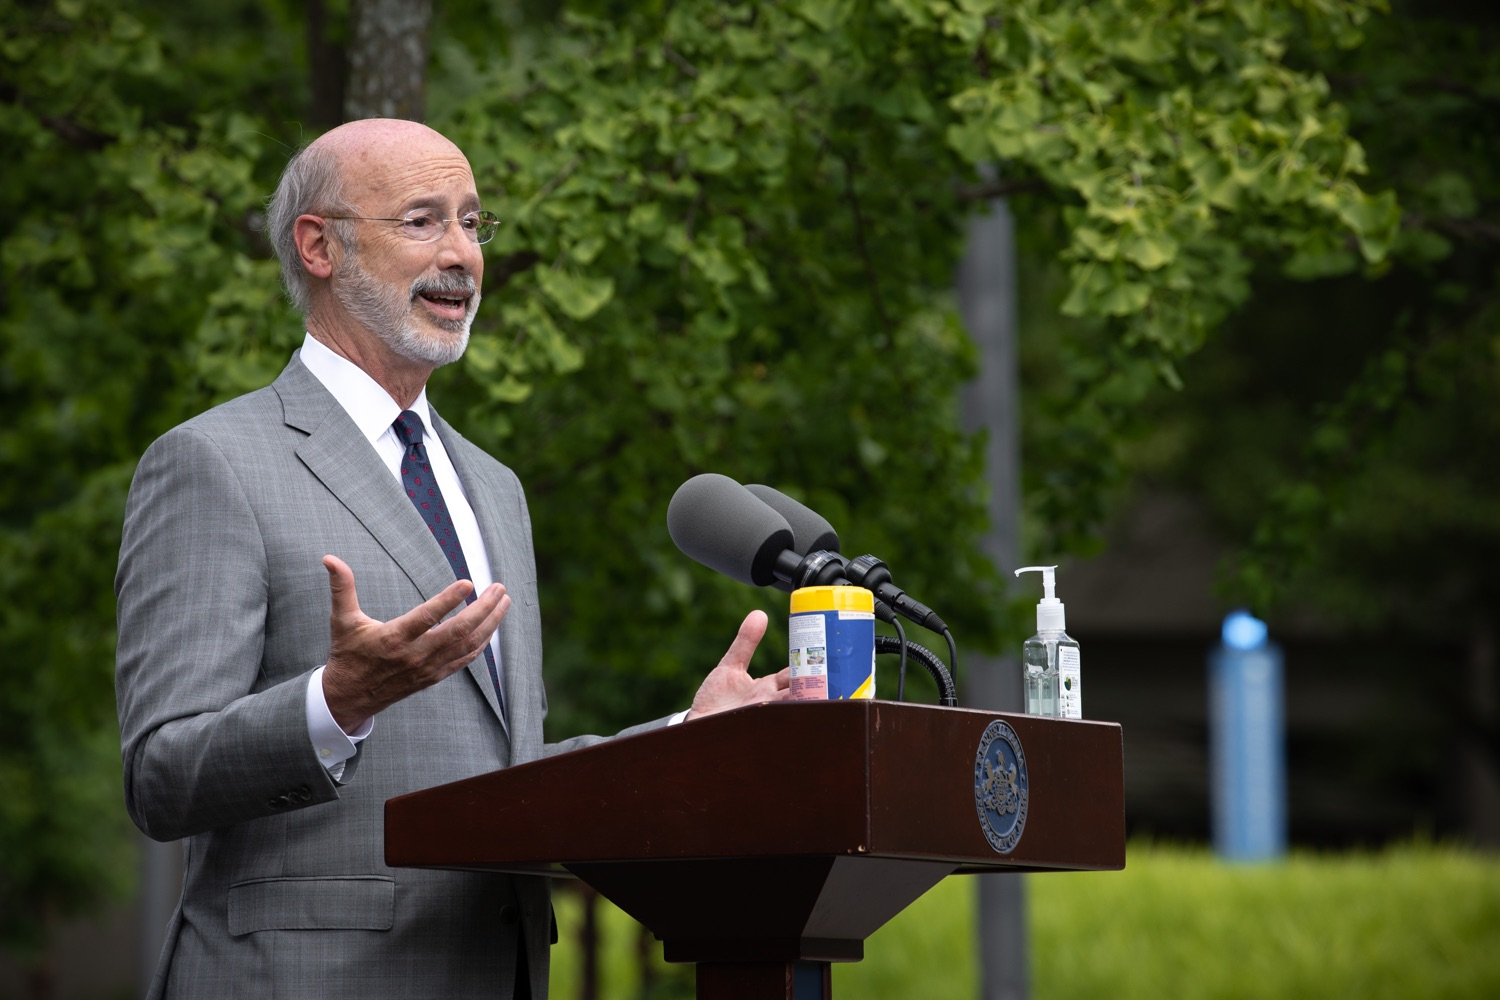 "<a href=""https://filesource.wostreaming.net/commonwealthofpa/photo/18093_gov-healthcare_workers_dz_14.jpg"" target=""_blank"">⇣ Download Photo<br></a>Pennsylvania Governor Tom Wolf answering questions from the press during his visit to Milton S. Hershey Medical Center. As the commonwealth continues its measured, phased reopening and COVID-19 case counts continue to decline, Governor Tom Wolf visited Penn State Milton S. Hershey Medical Center today to thank staff and learn more about how the facility is handling the pandemic and preparing for a possible resurgence in the fall.  Harrisburg, PA  June 24, 2020"